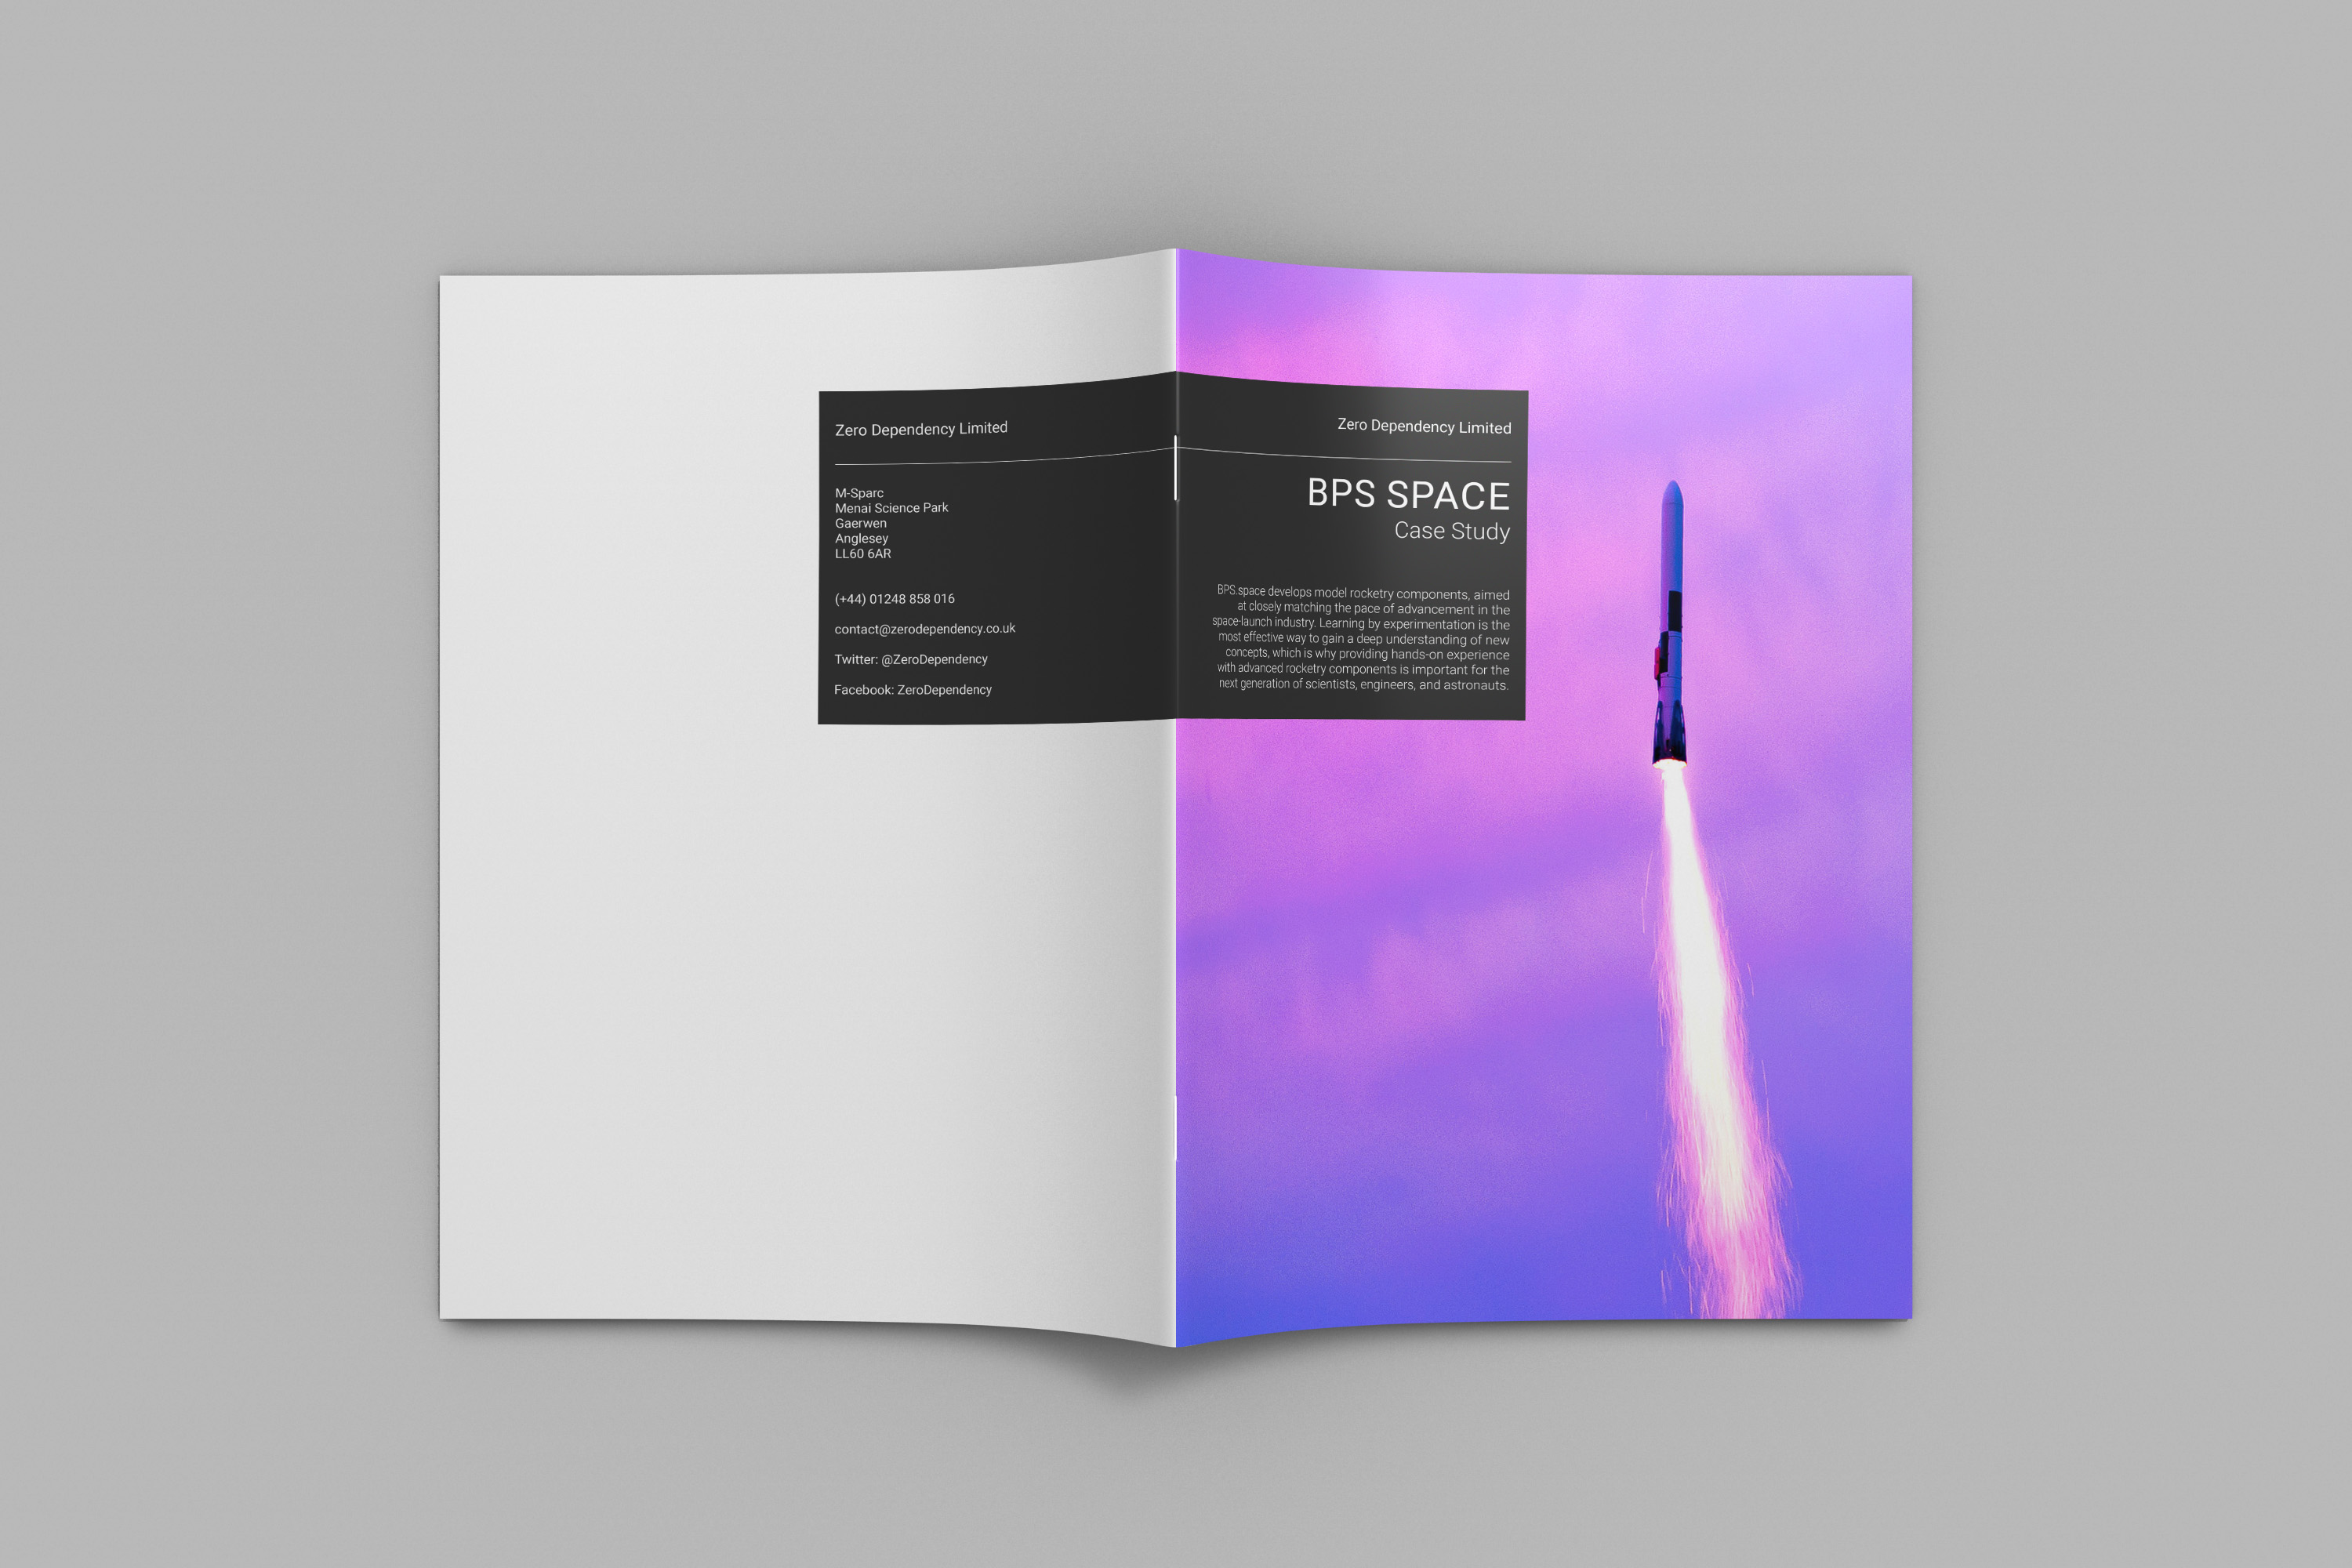 Zero Dependency BPS Space Case Study Brochure Cover